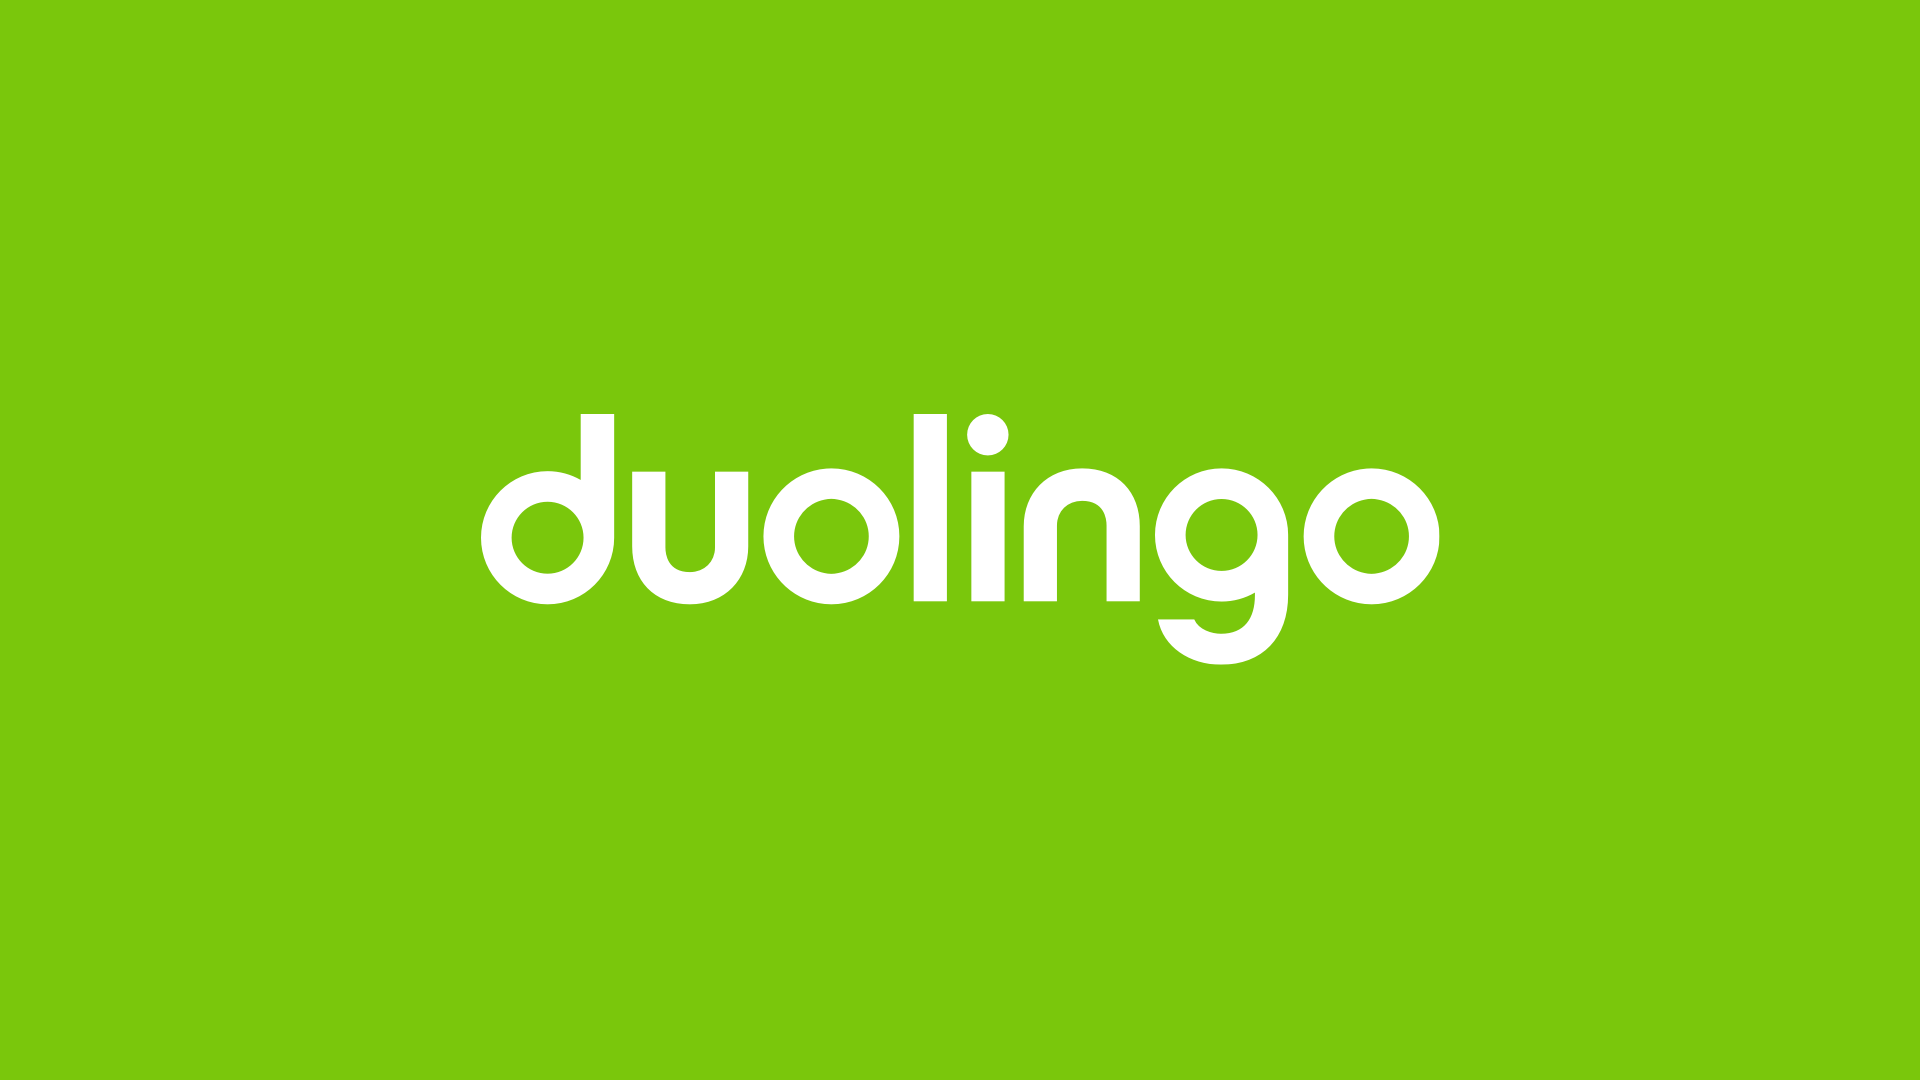 New Duolingo Logo Rebrand Johnson Banks